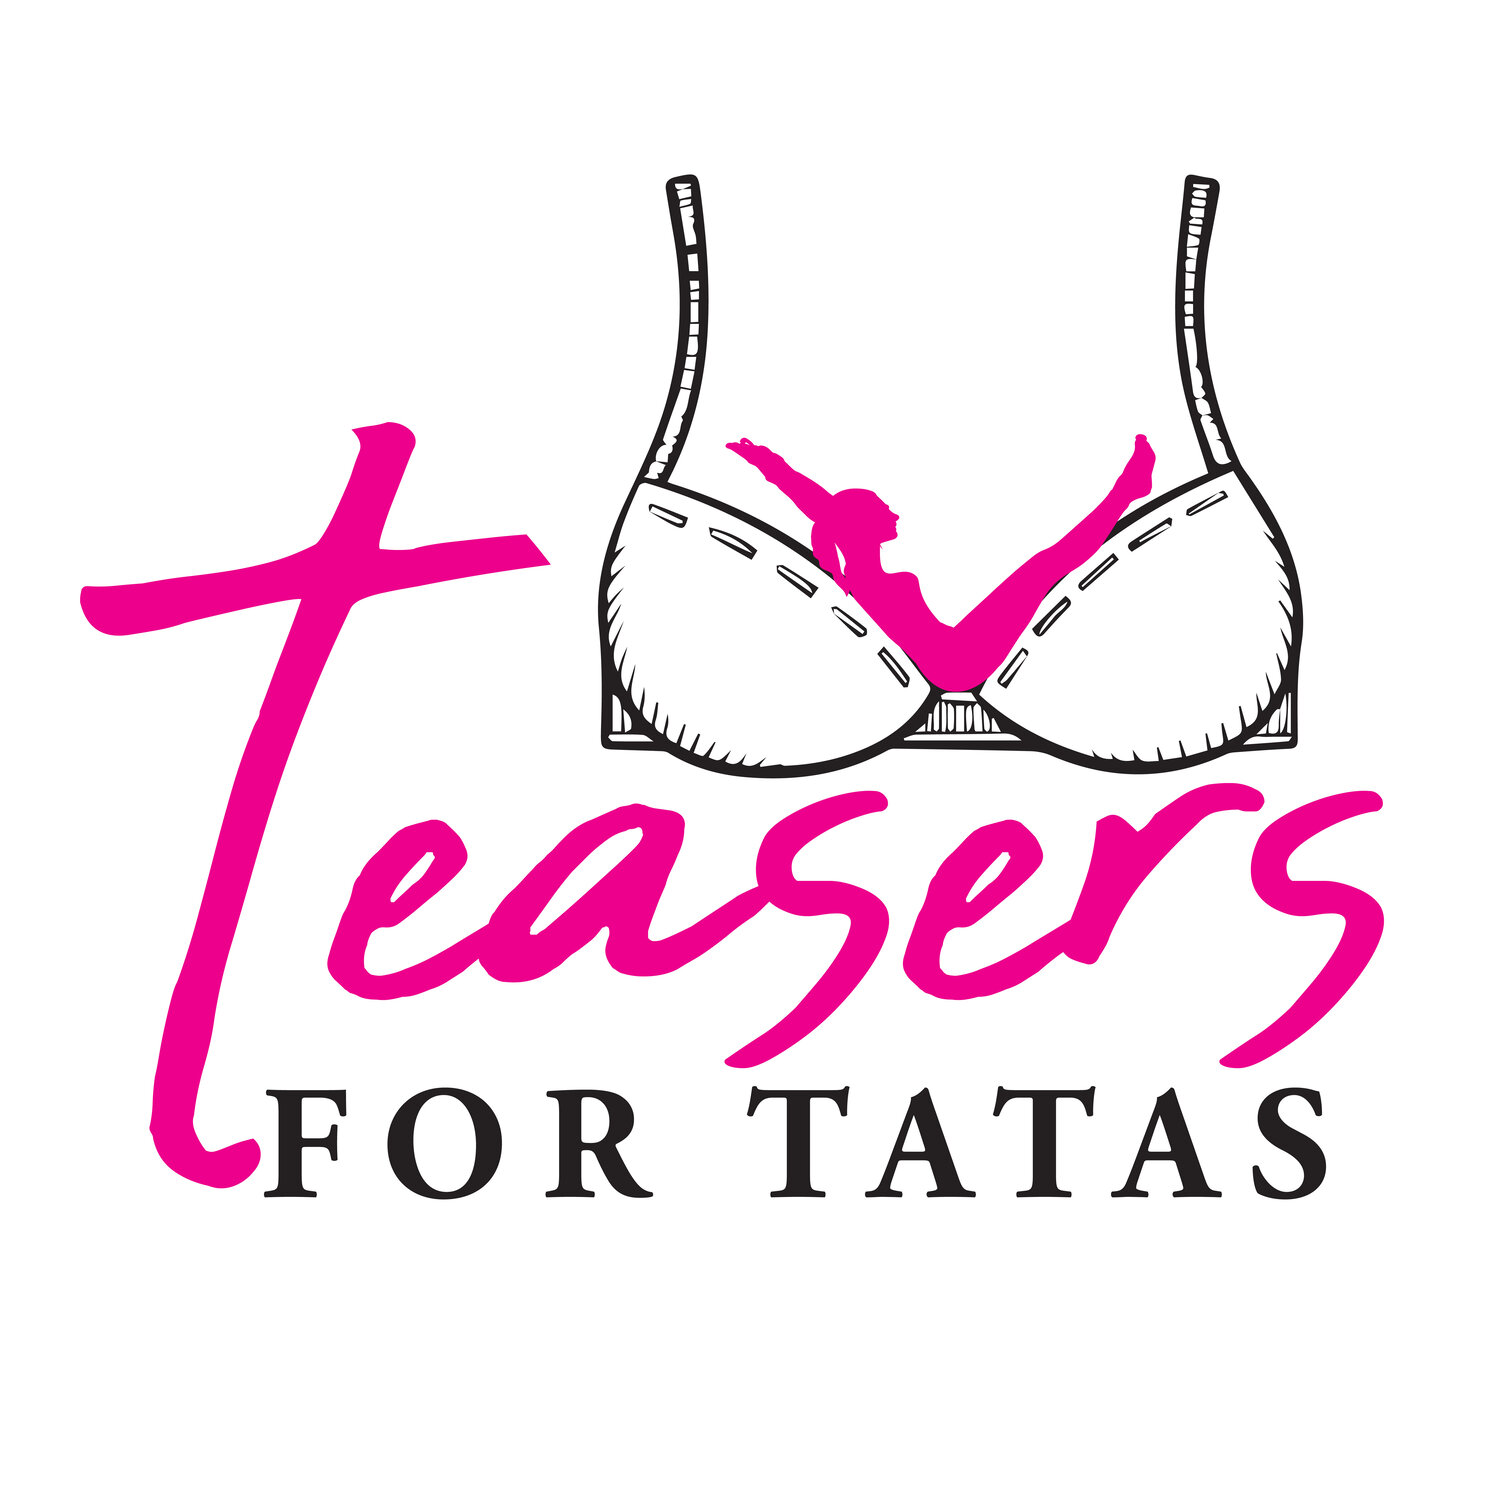 Teasers For Tatas